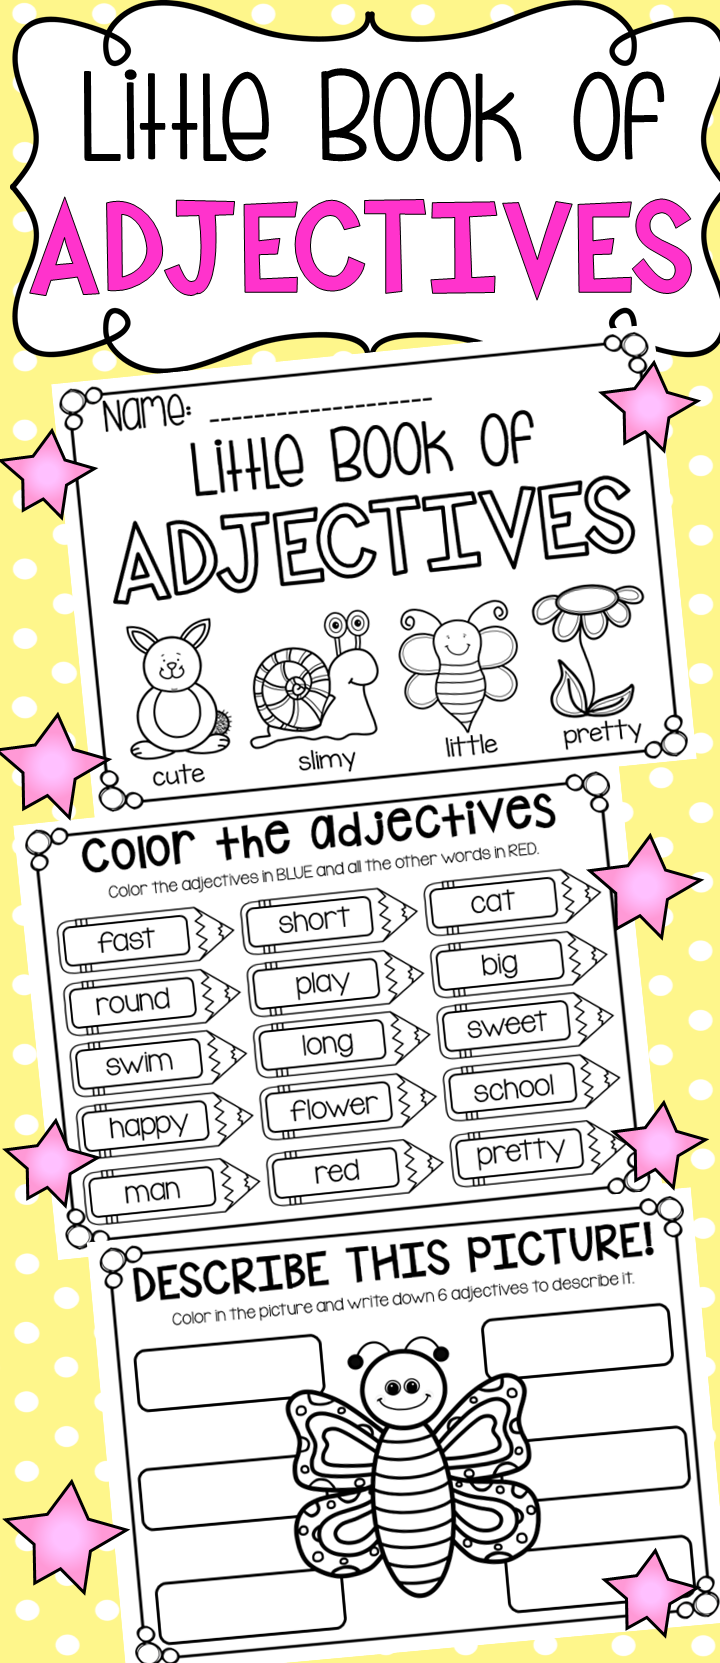 little book of adjectives half page printable worksheet booklet my tpt store adjective. Black Bedroom Furniture Sets. Home Design Ideas